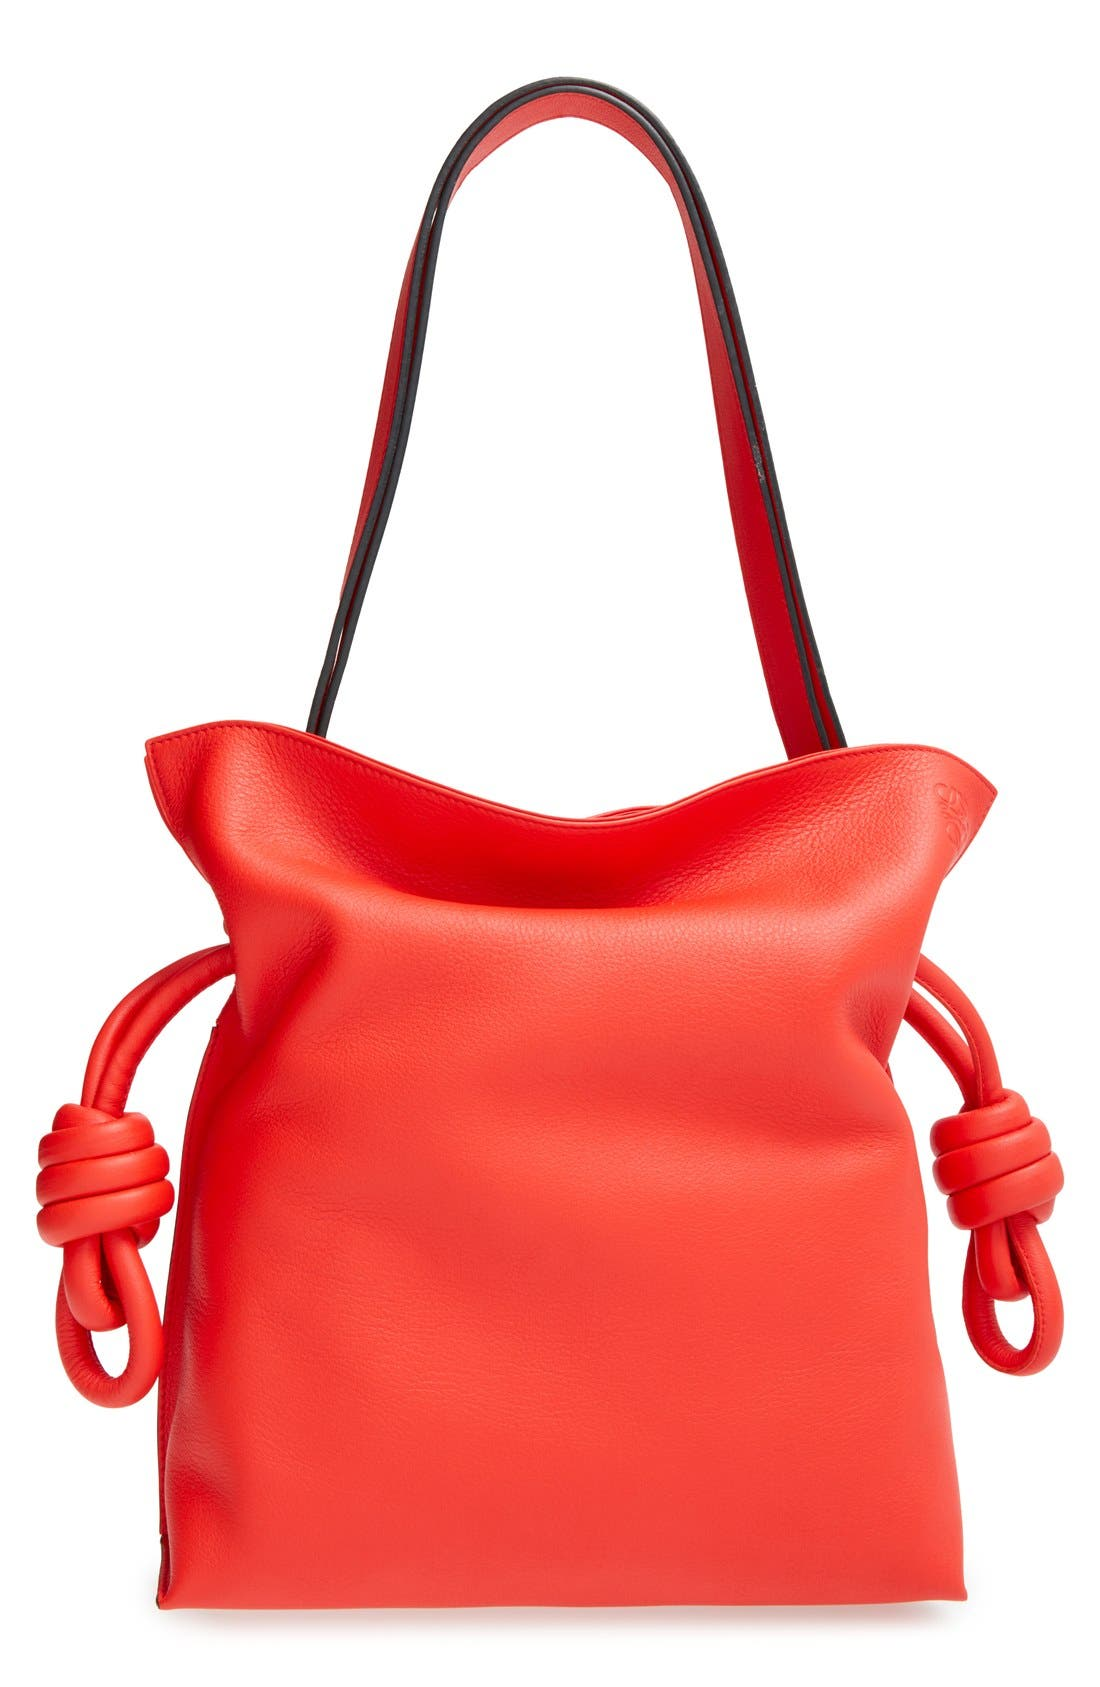 LOEWE 'Small Flamenco Knot' Calfskin Leather Bag